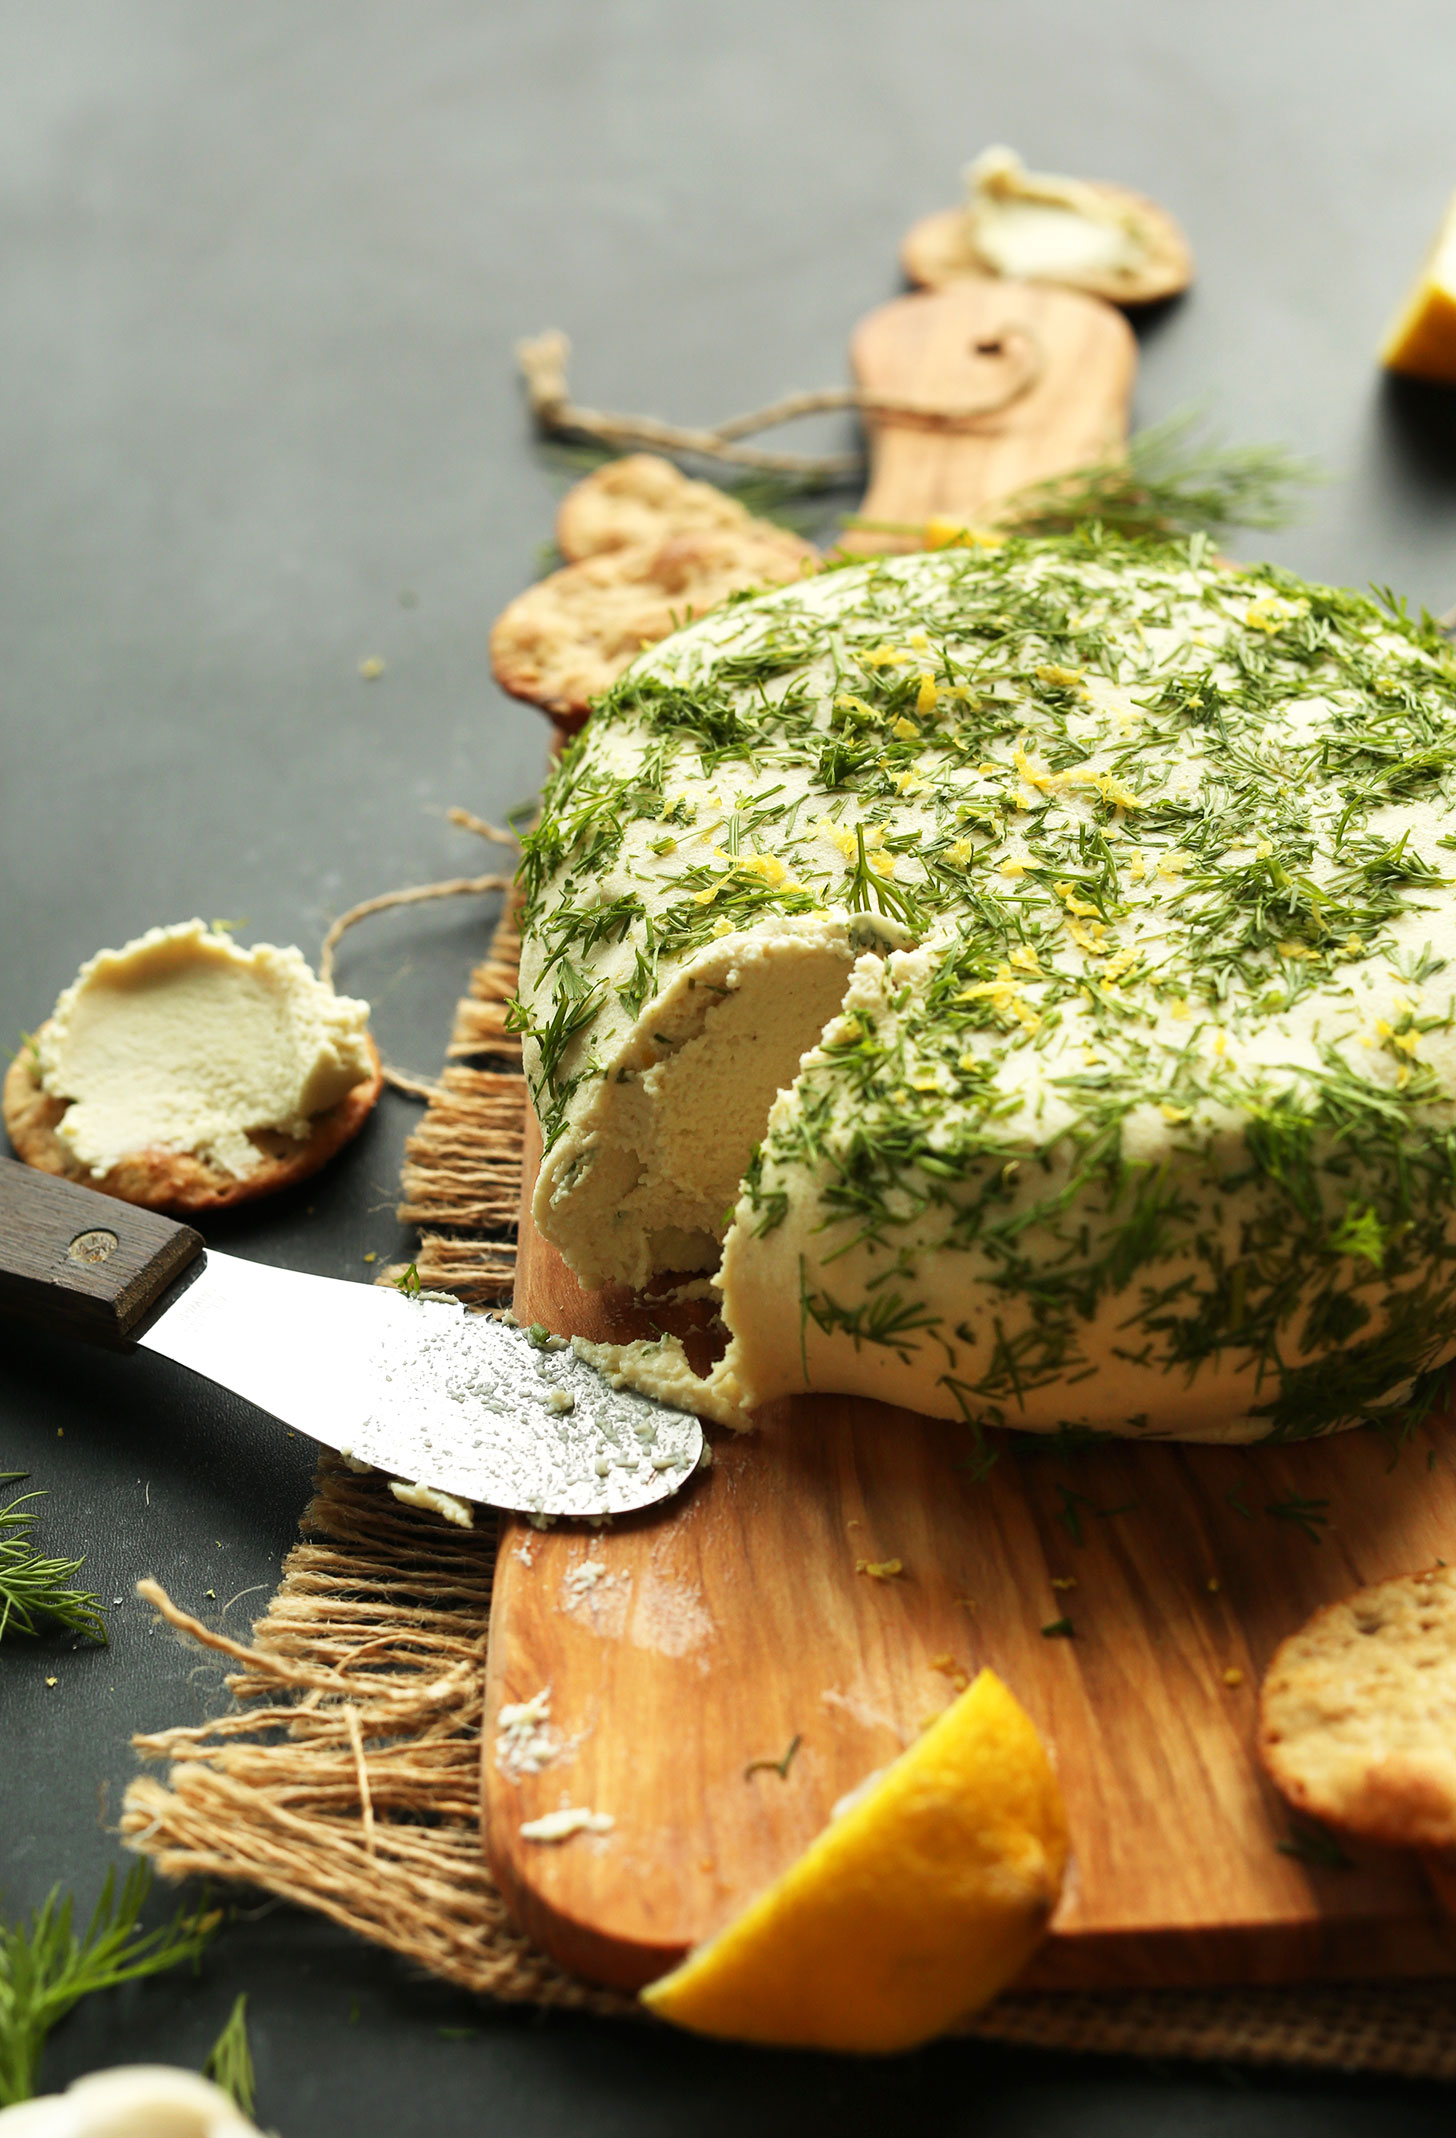 EASY-Creamy-VEGAN-CHEESE-Infused-with-lemon-zest-garlic-and-dill.-So-creamy-savory-and-cheesy-vegan-plantbased-glutenfree-cheese-recipe-minimalistbaker